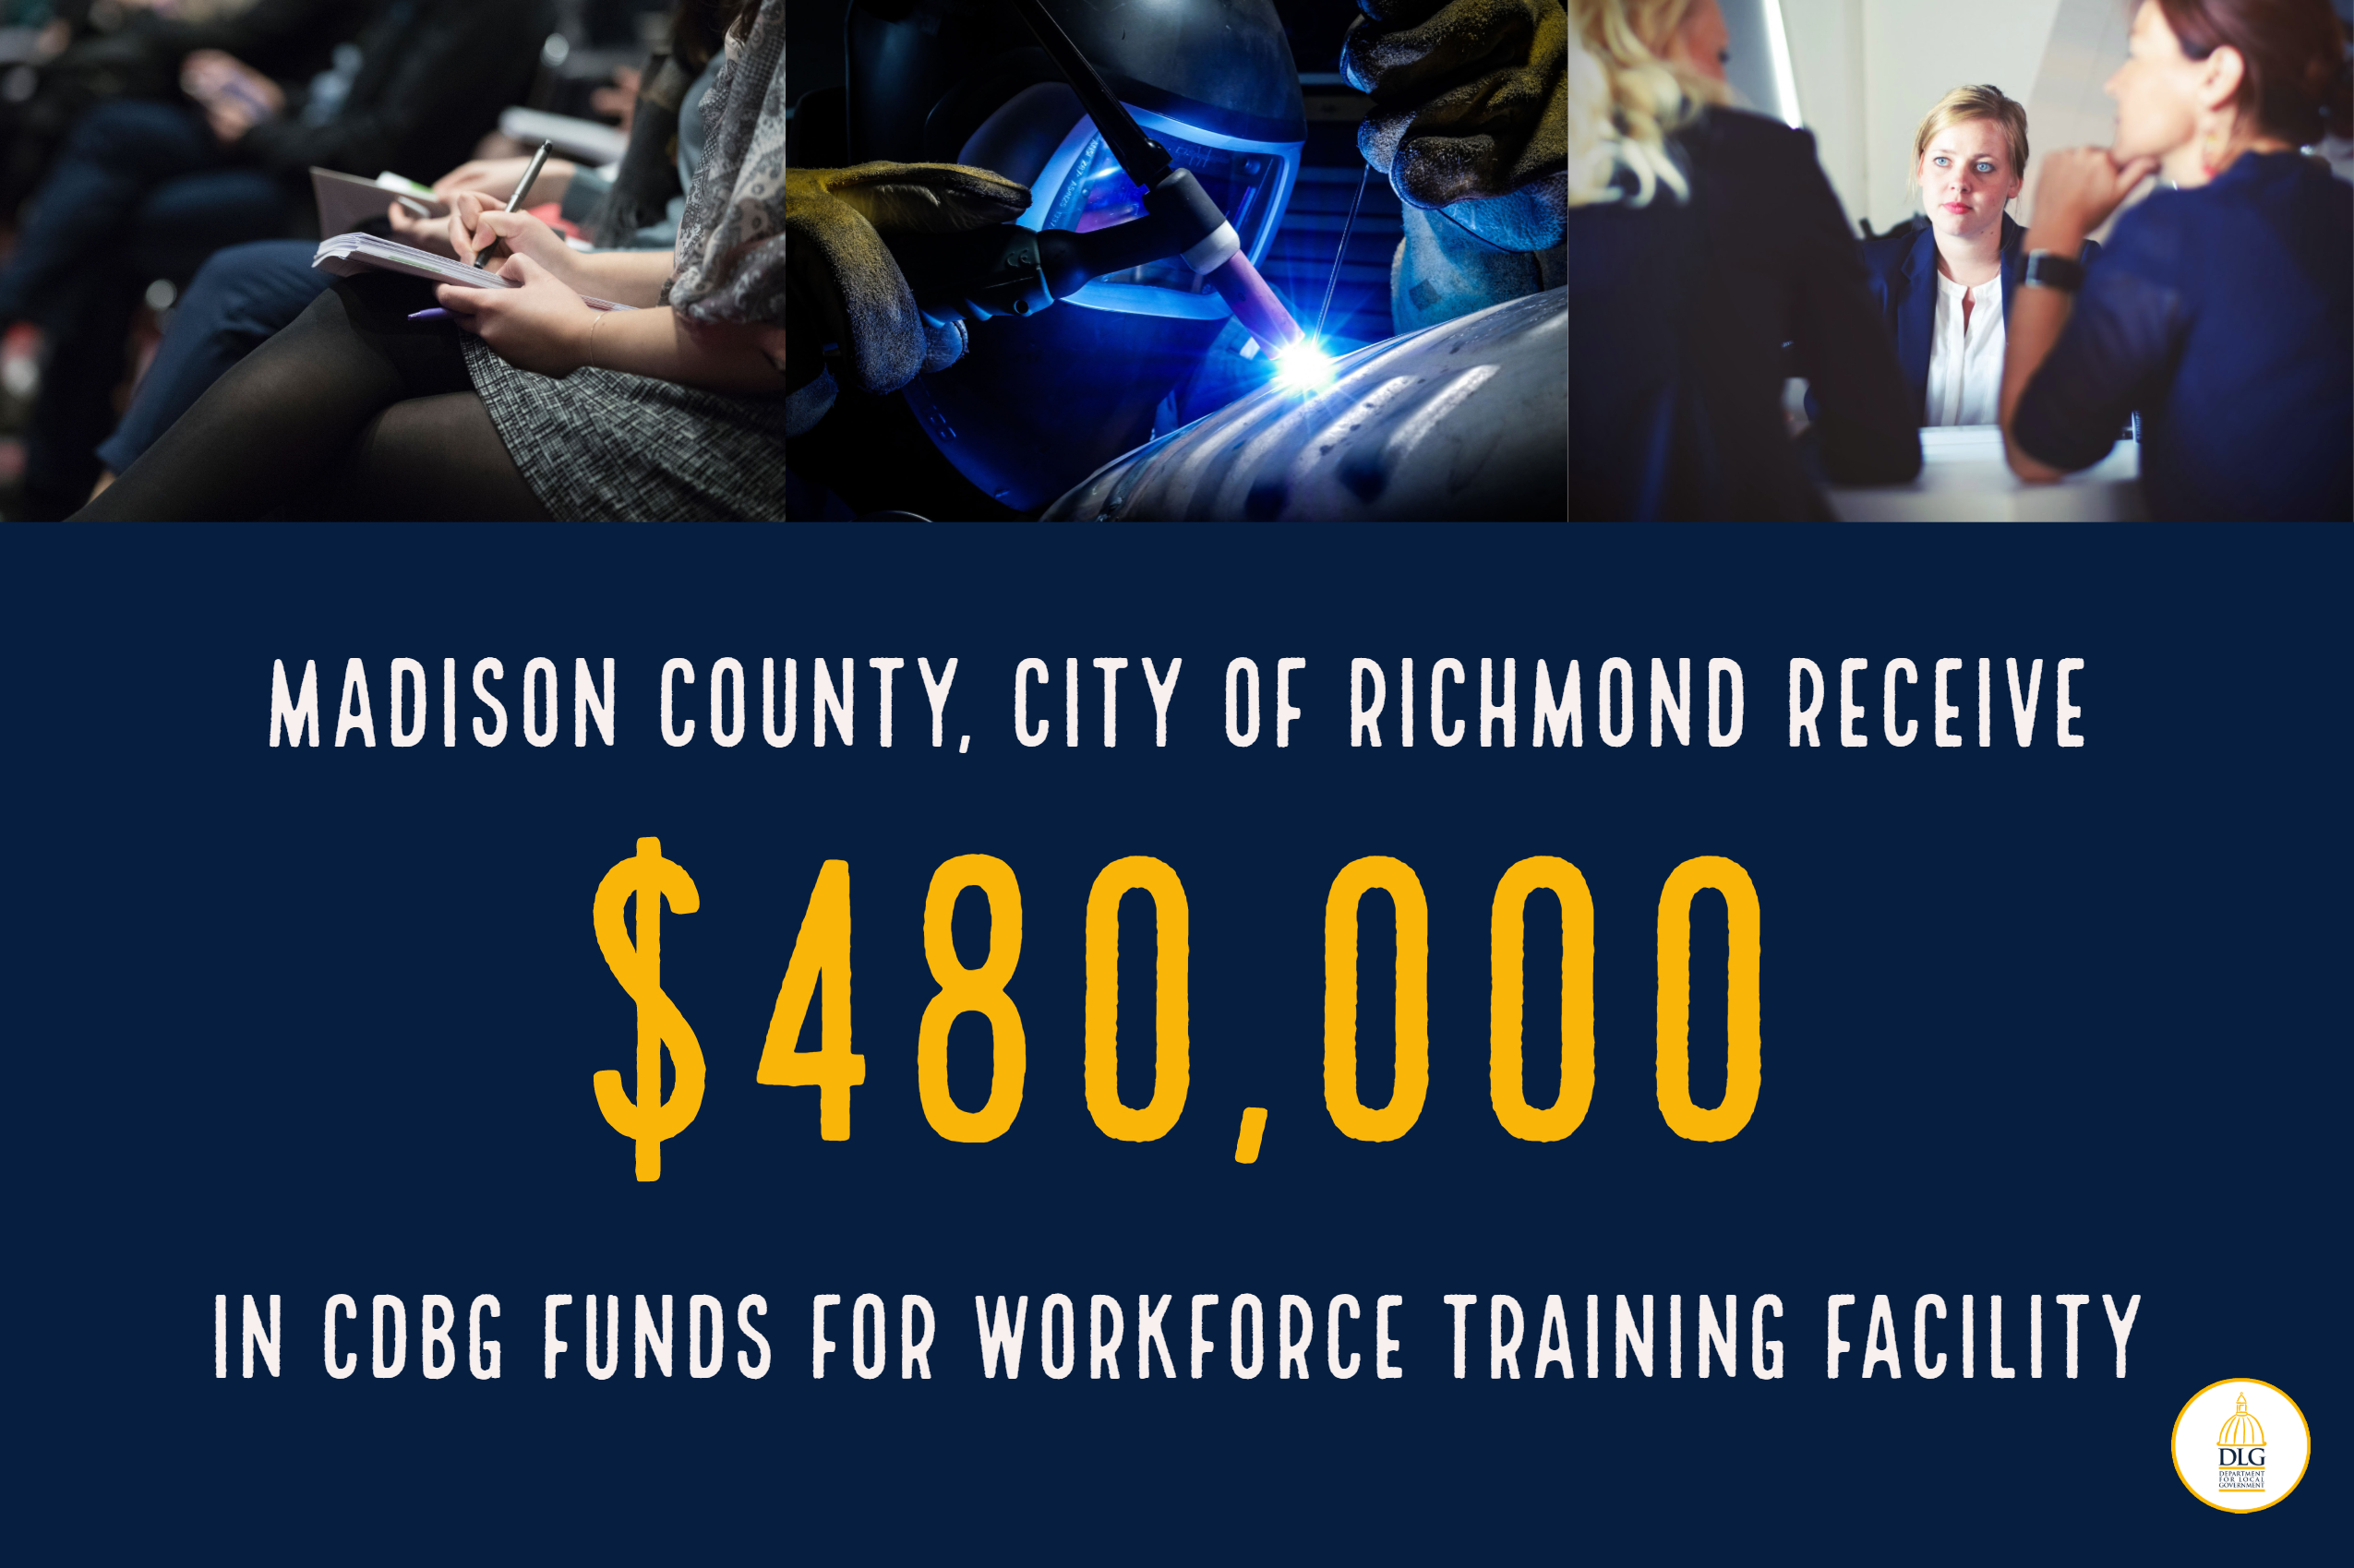 Madison County, City of Richmond Receive $480,000 Community Development Block Grant